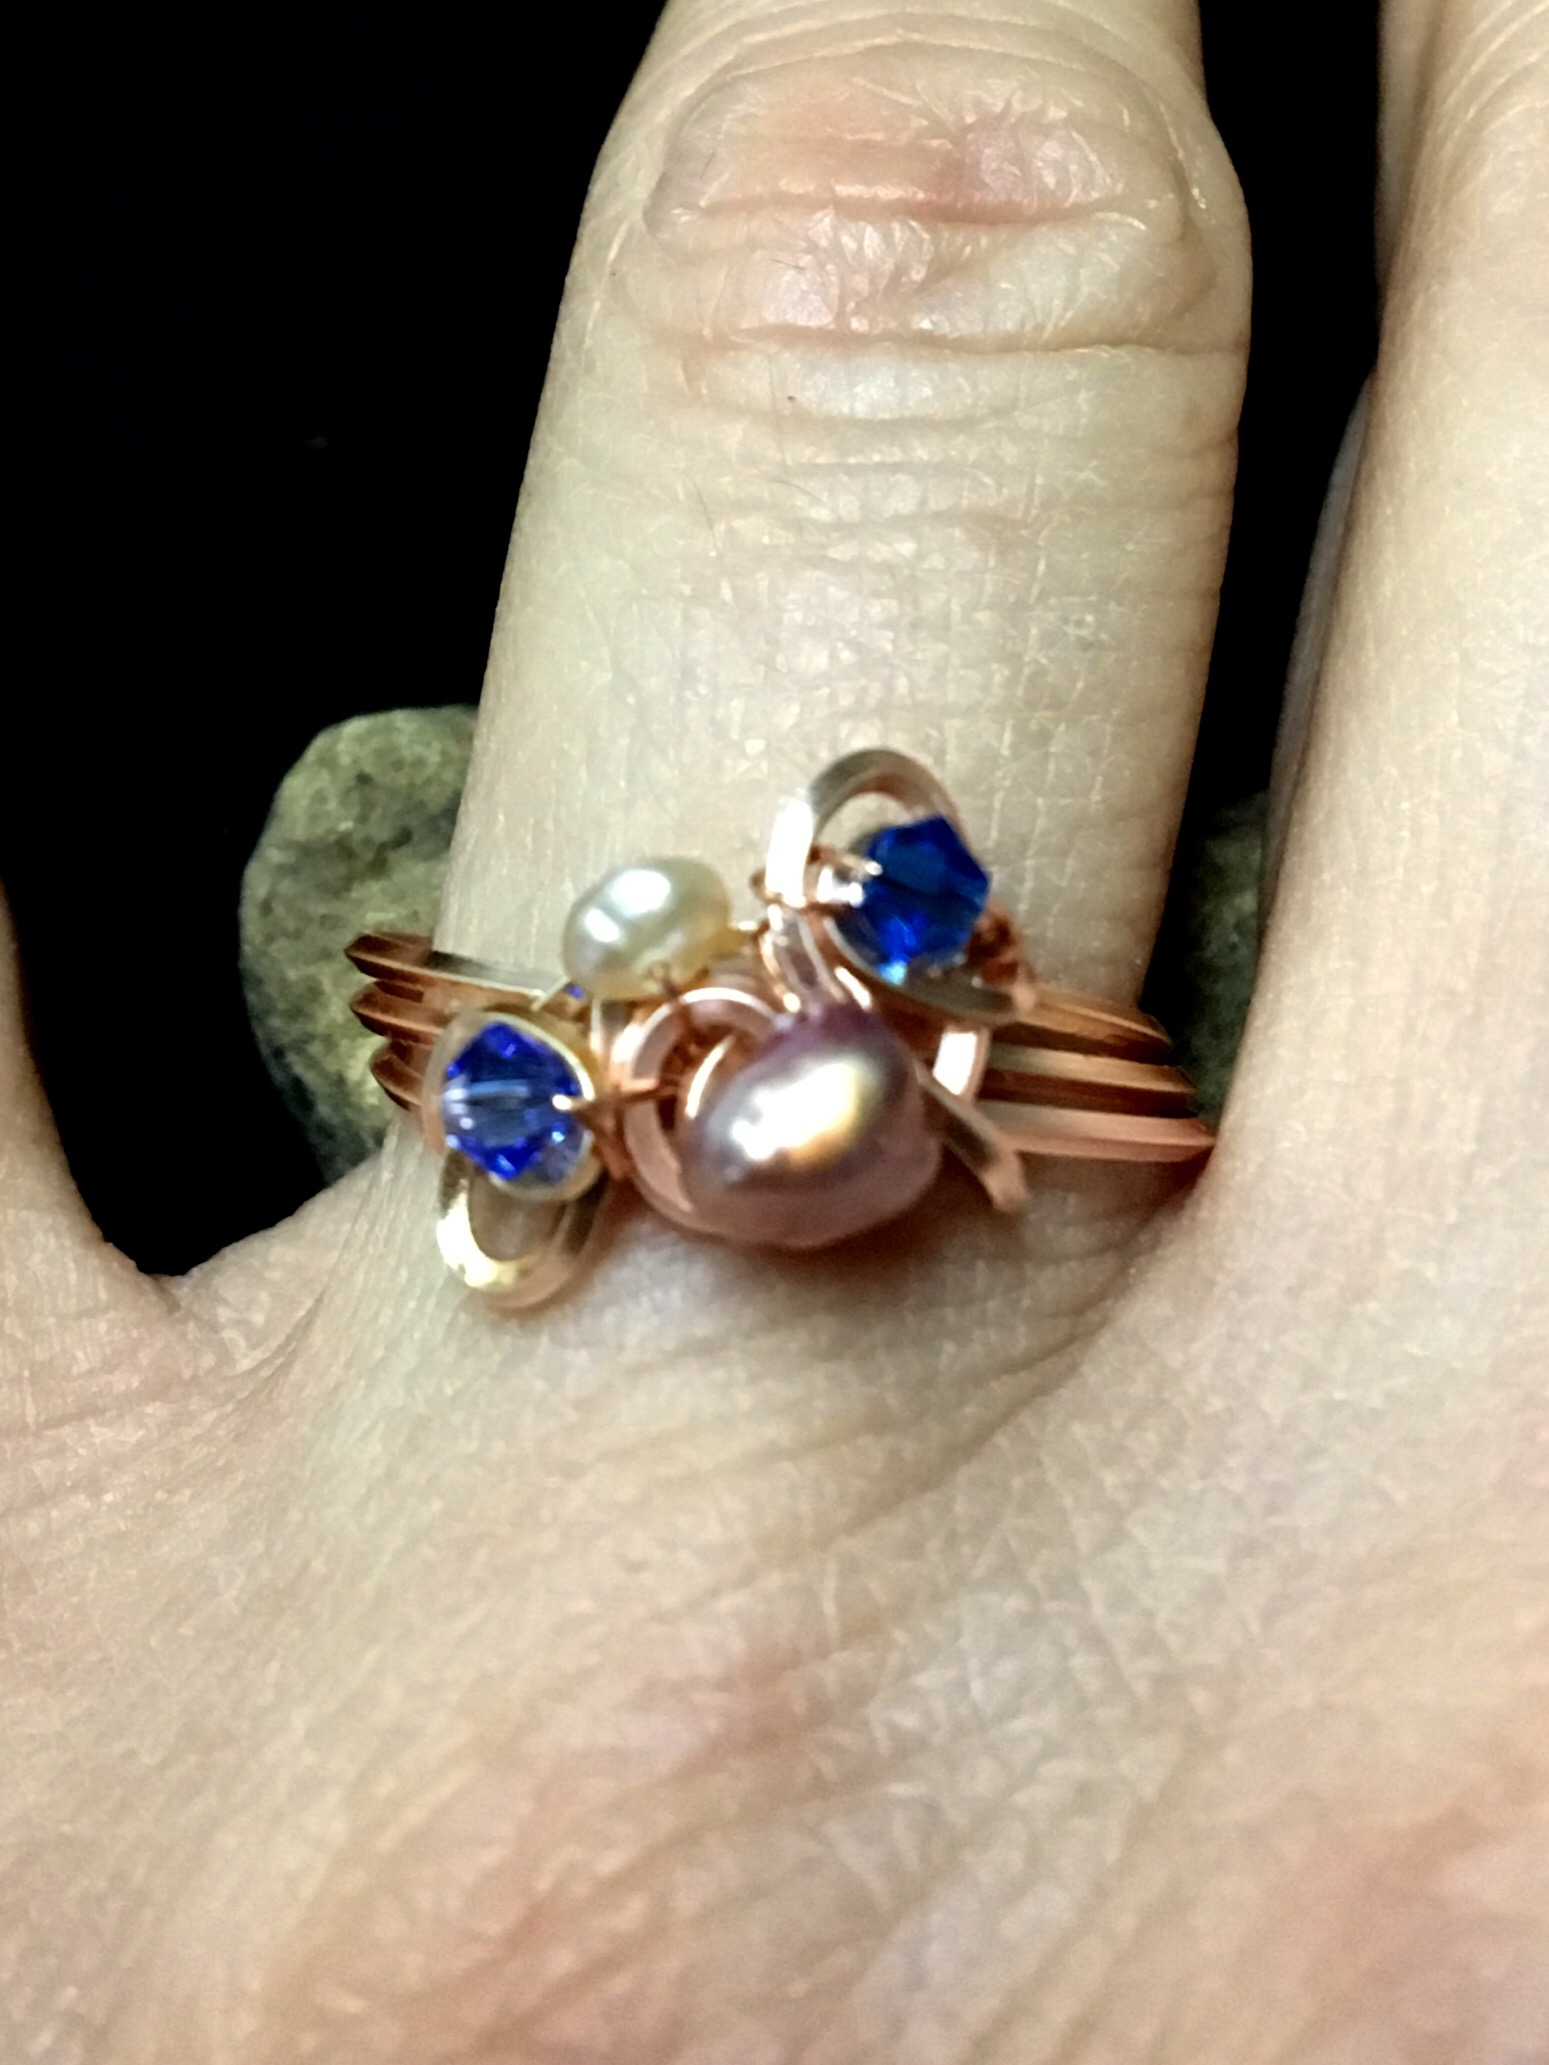 Dainty Deva Ring on finger - pink pearls and swarovsky - Silver Plated Rose gold Color.